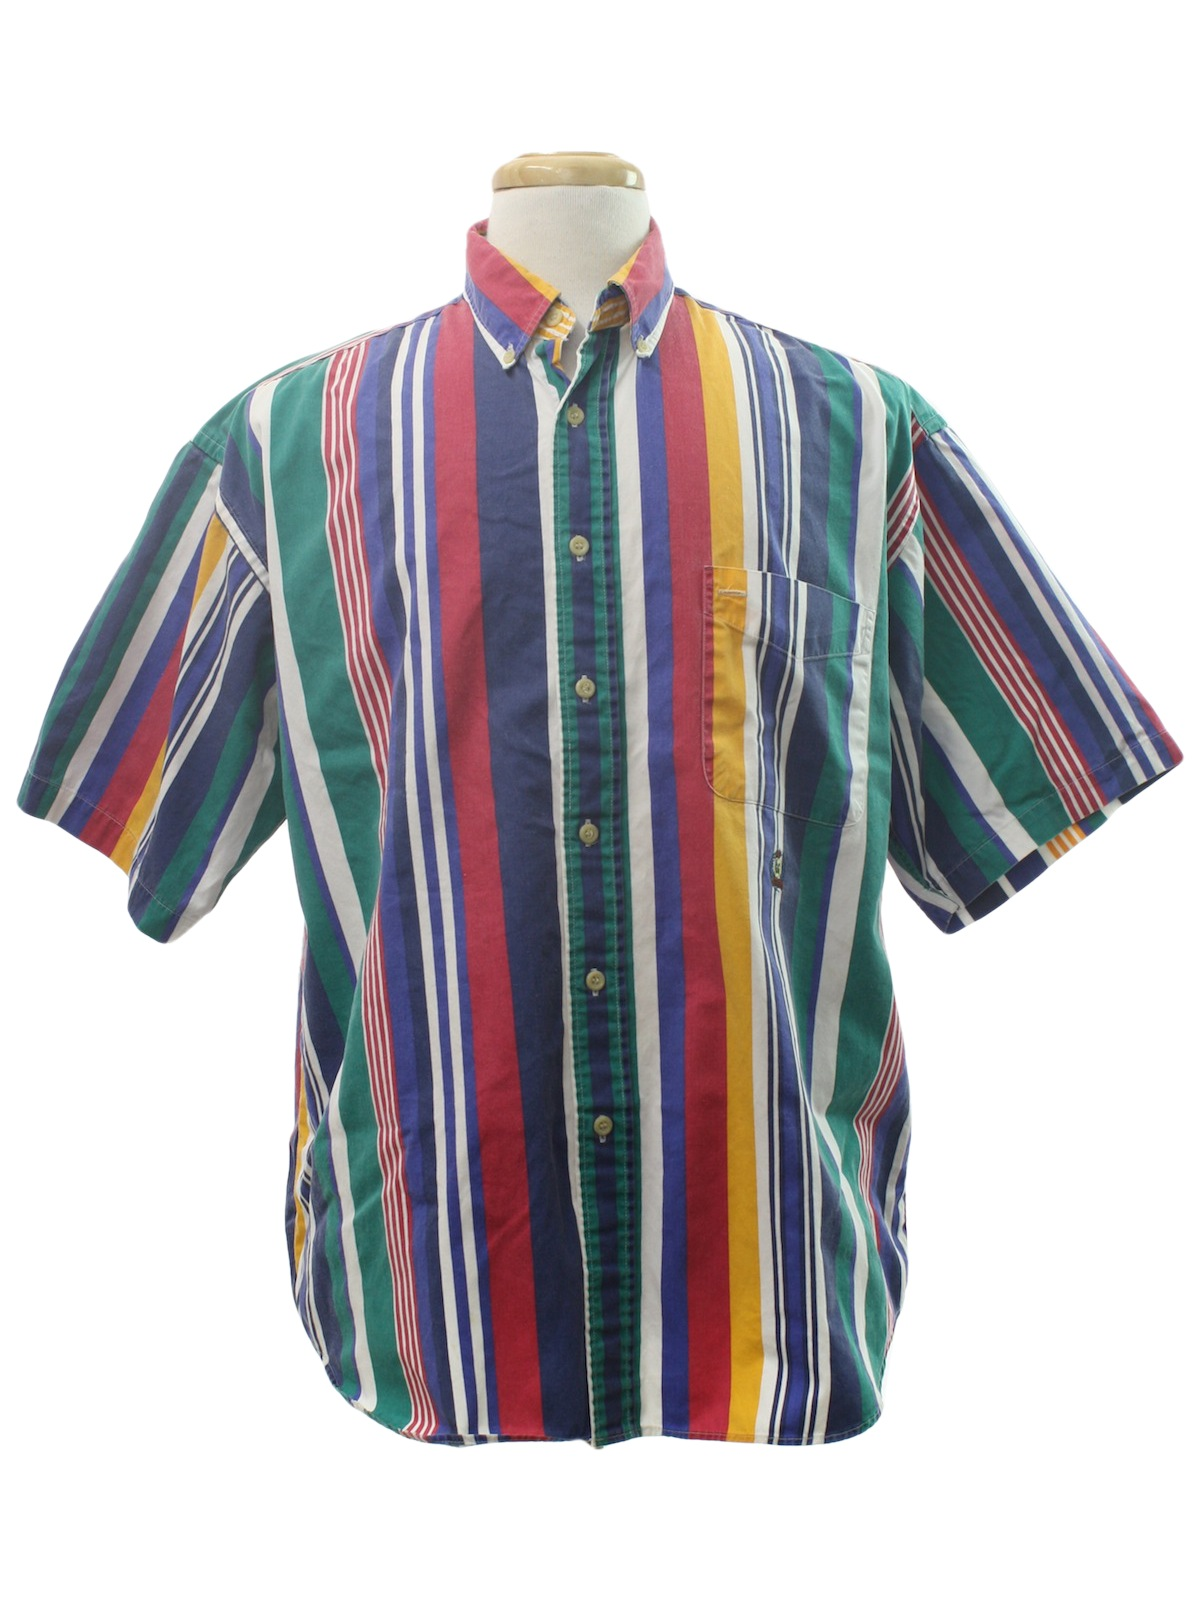 Vintage 1980 S Shirt 80s Good Guys Mens Multi Colored